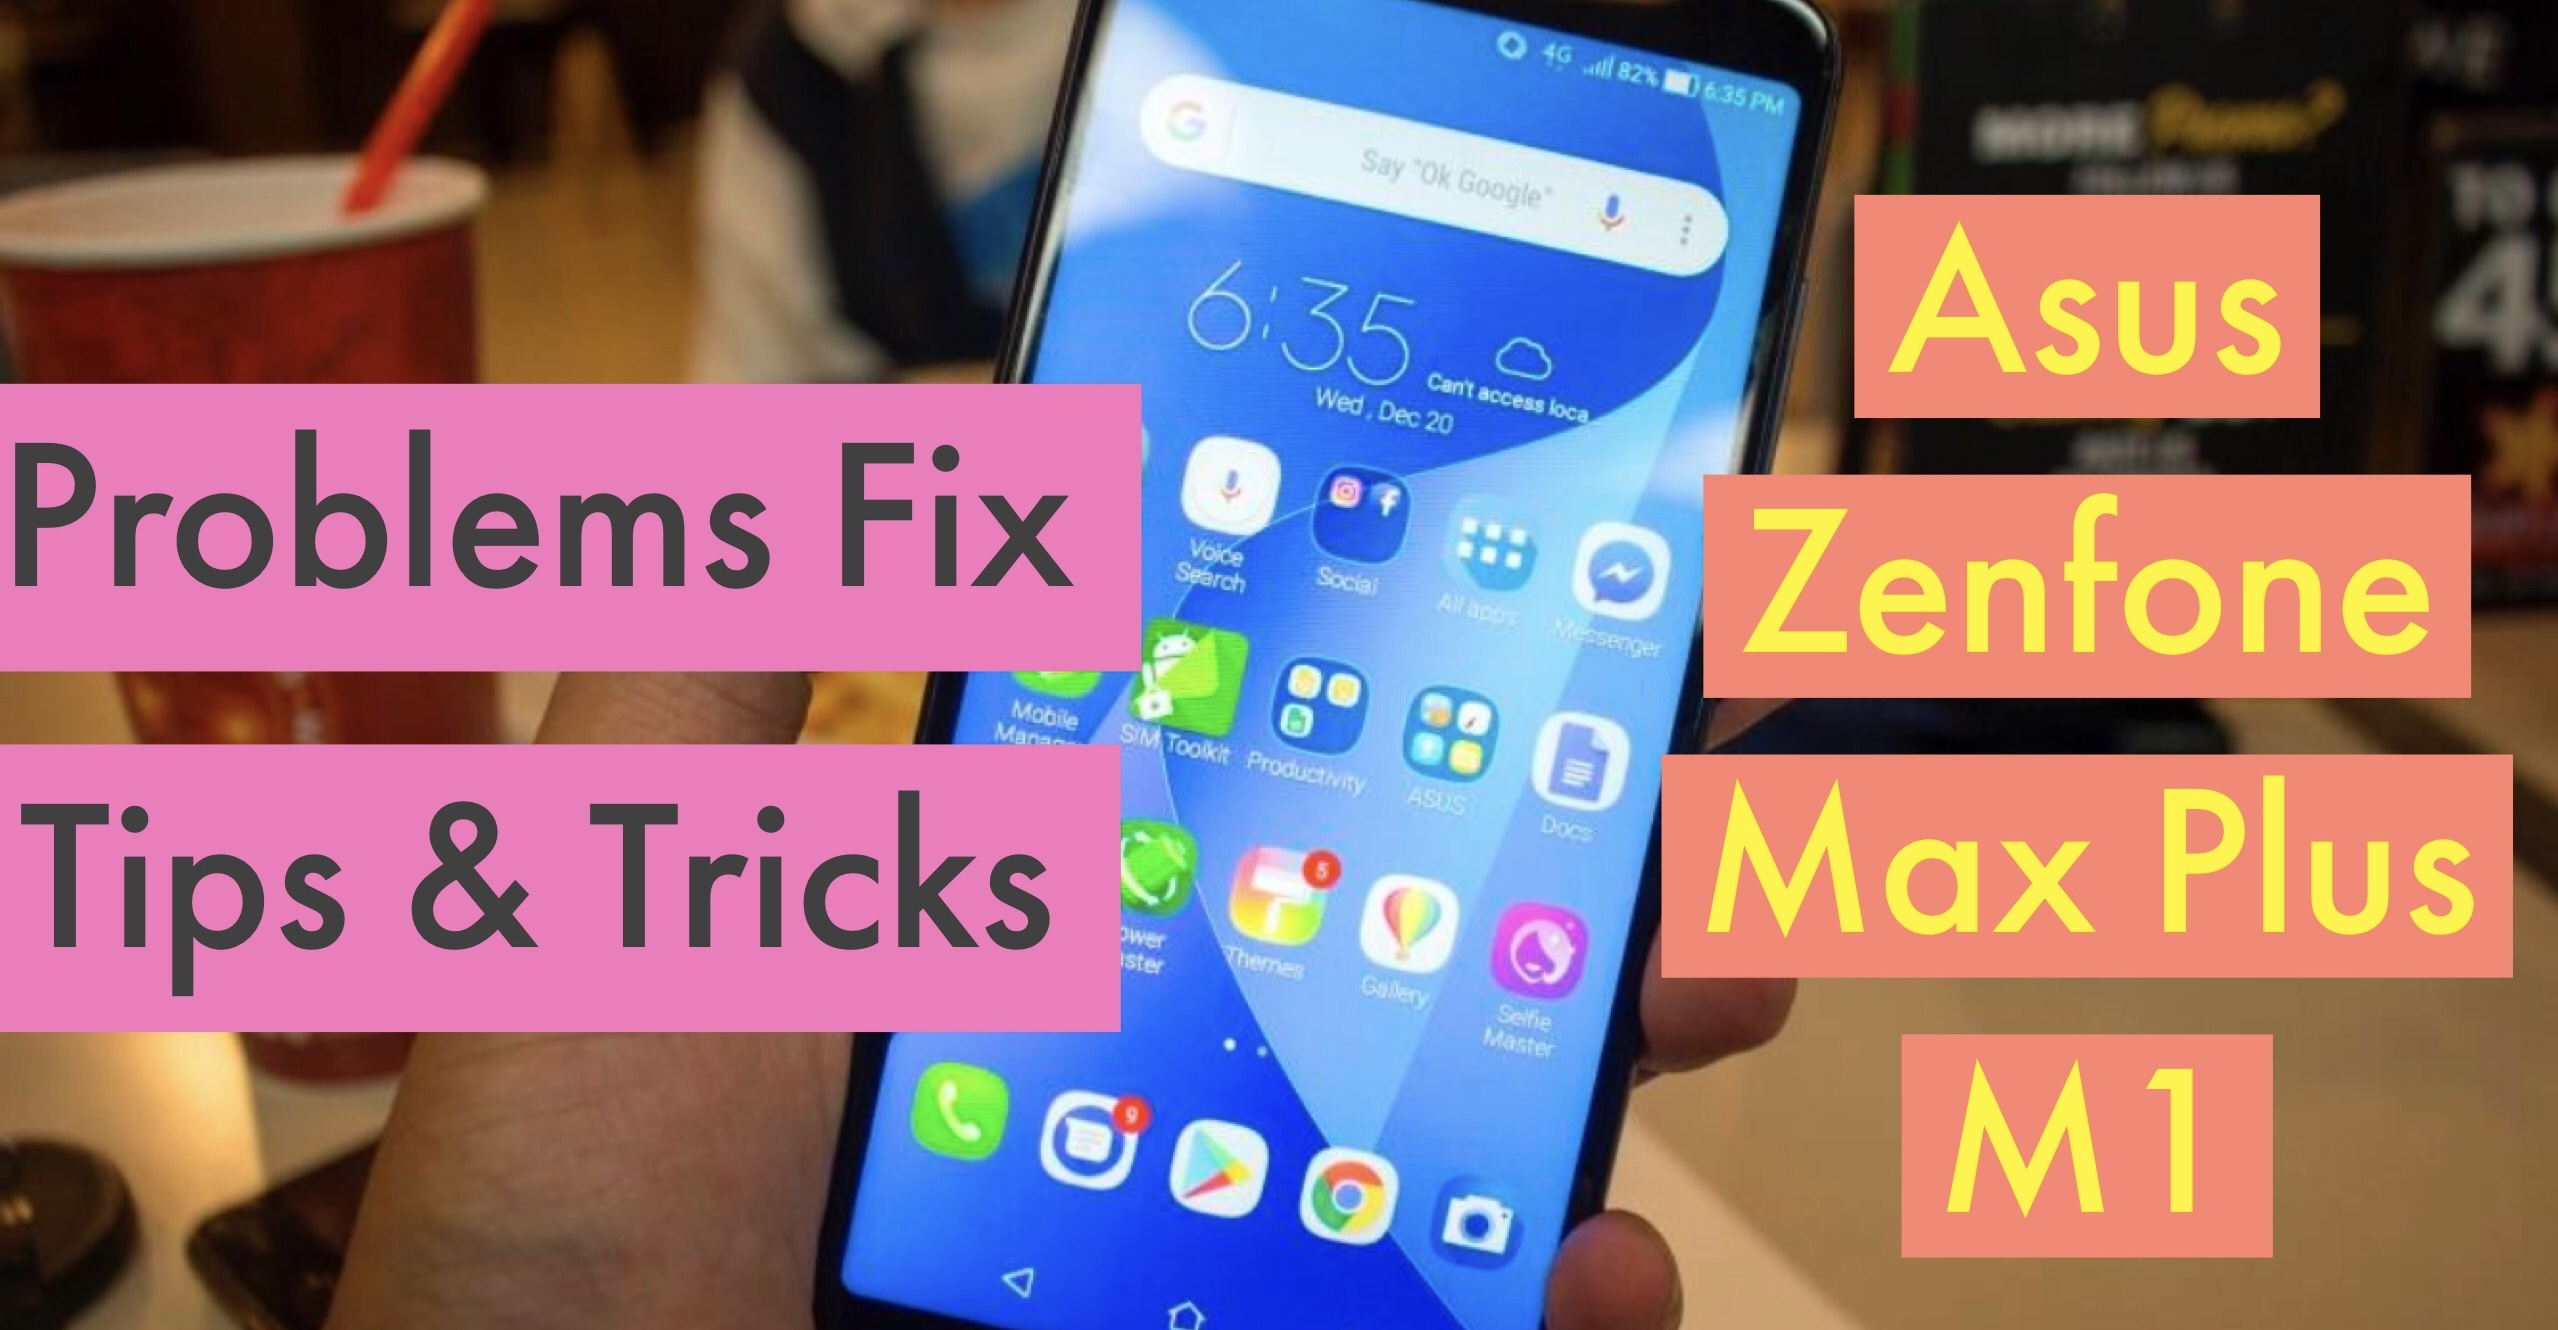 ASUS Zenfone Max Plus M1 Most Common Issues FIX - TIPS & TRICKS!